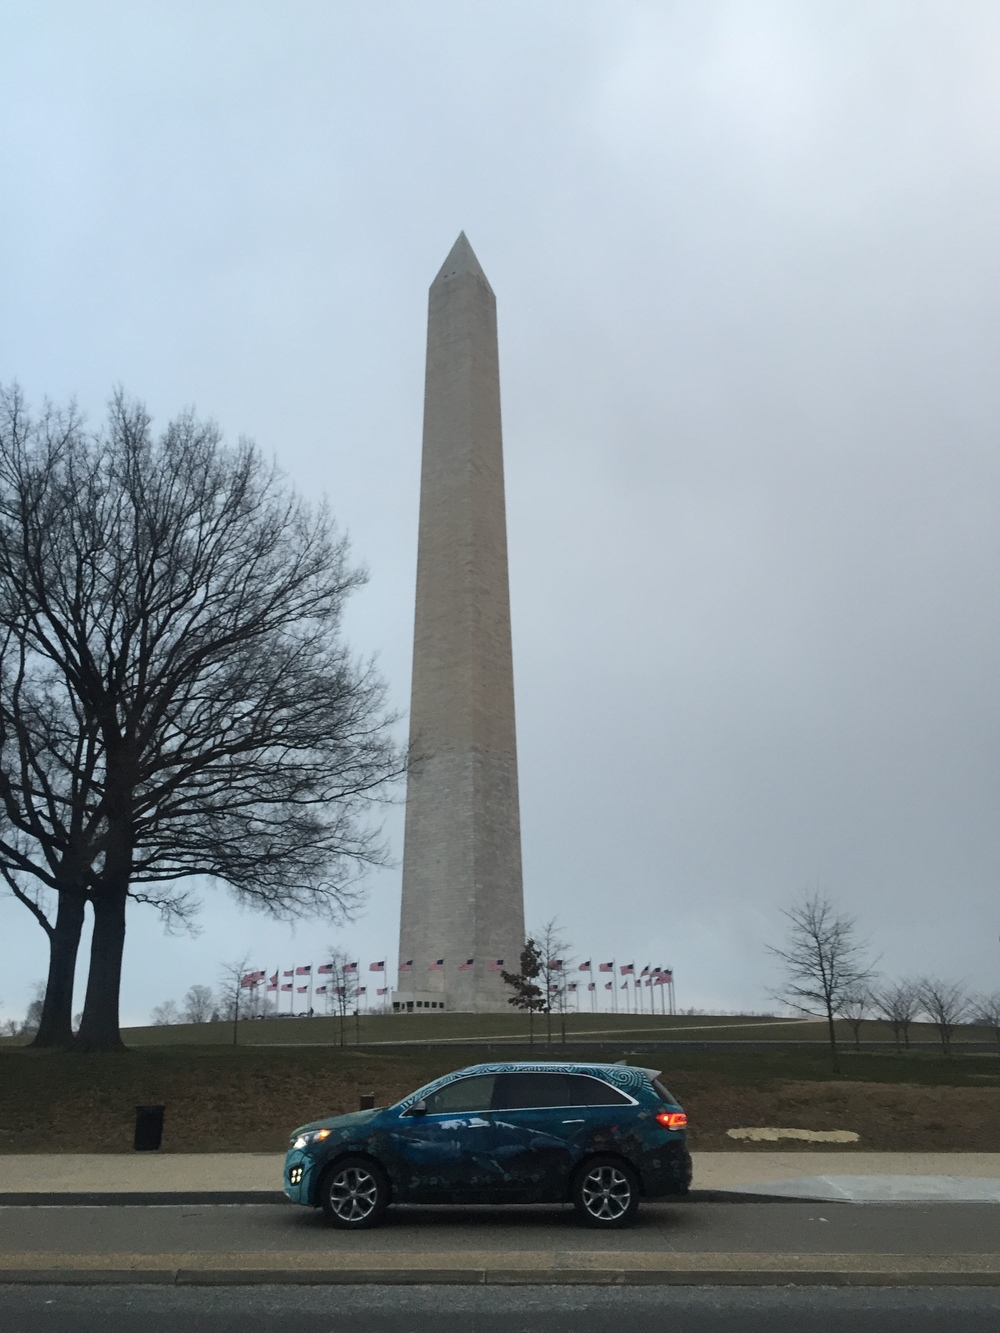 Kia Sorento Art Car - Washington Monument